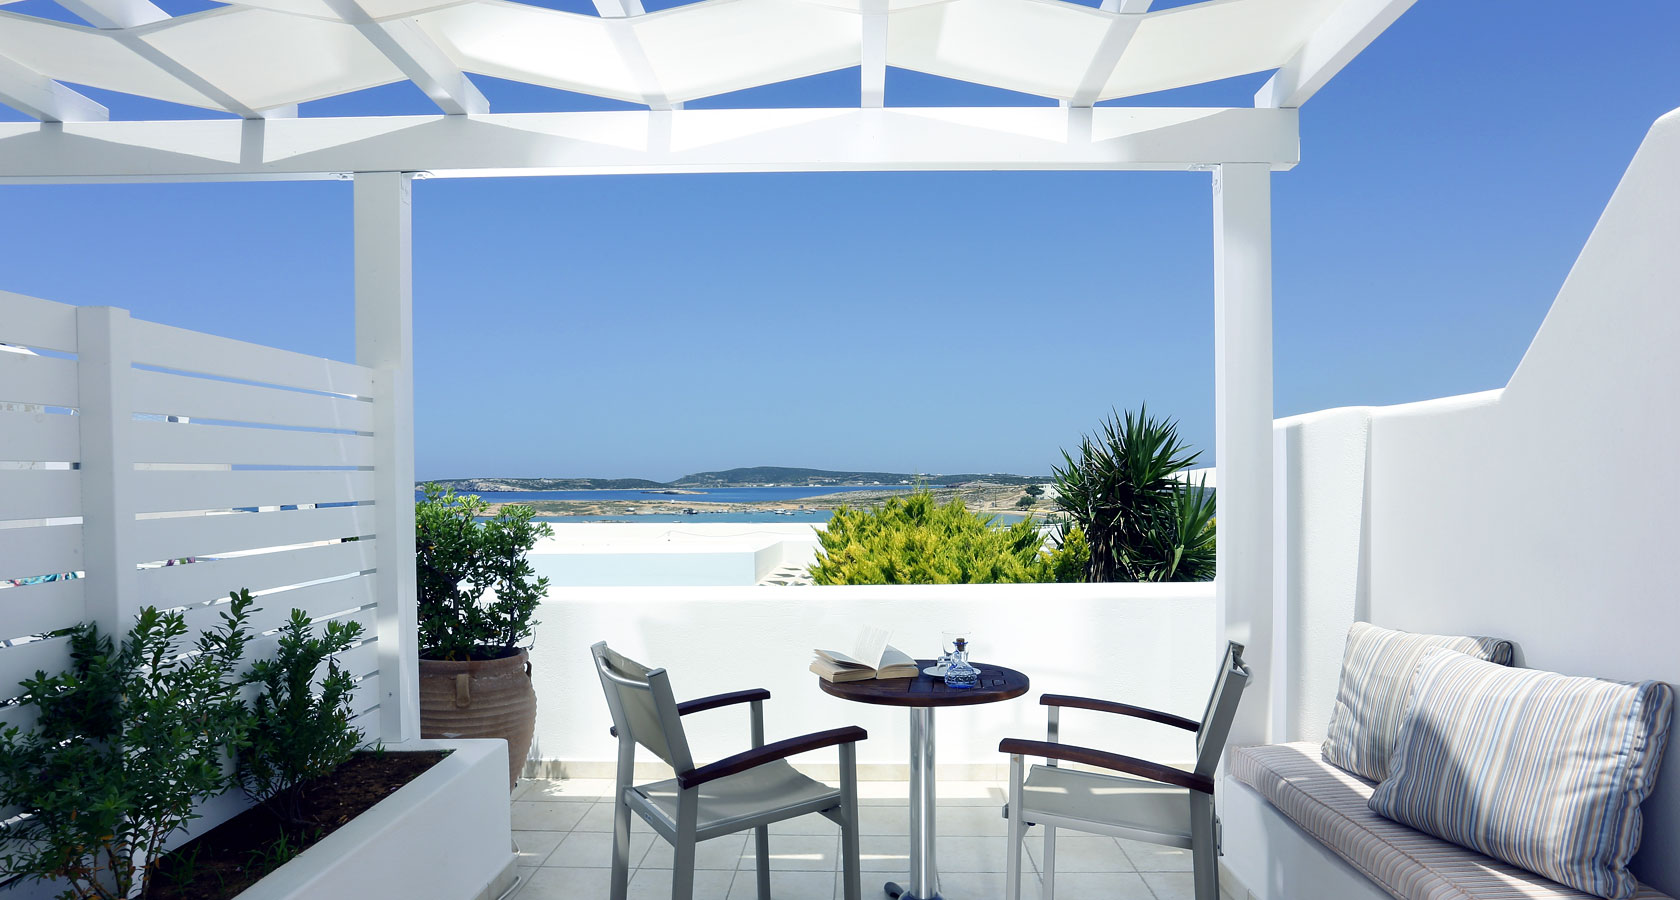 Sea View from Stelia Mare Hotel in Paros